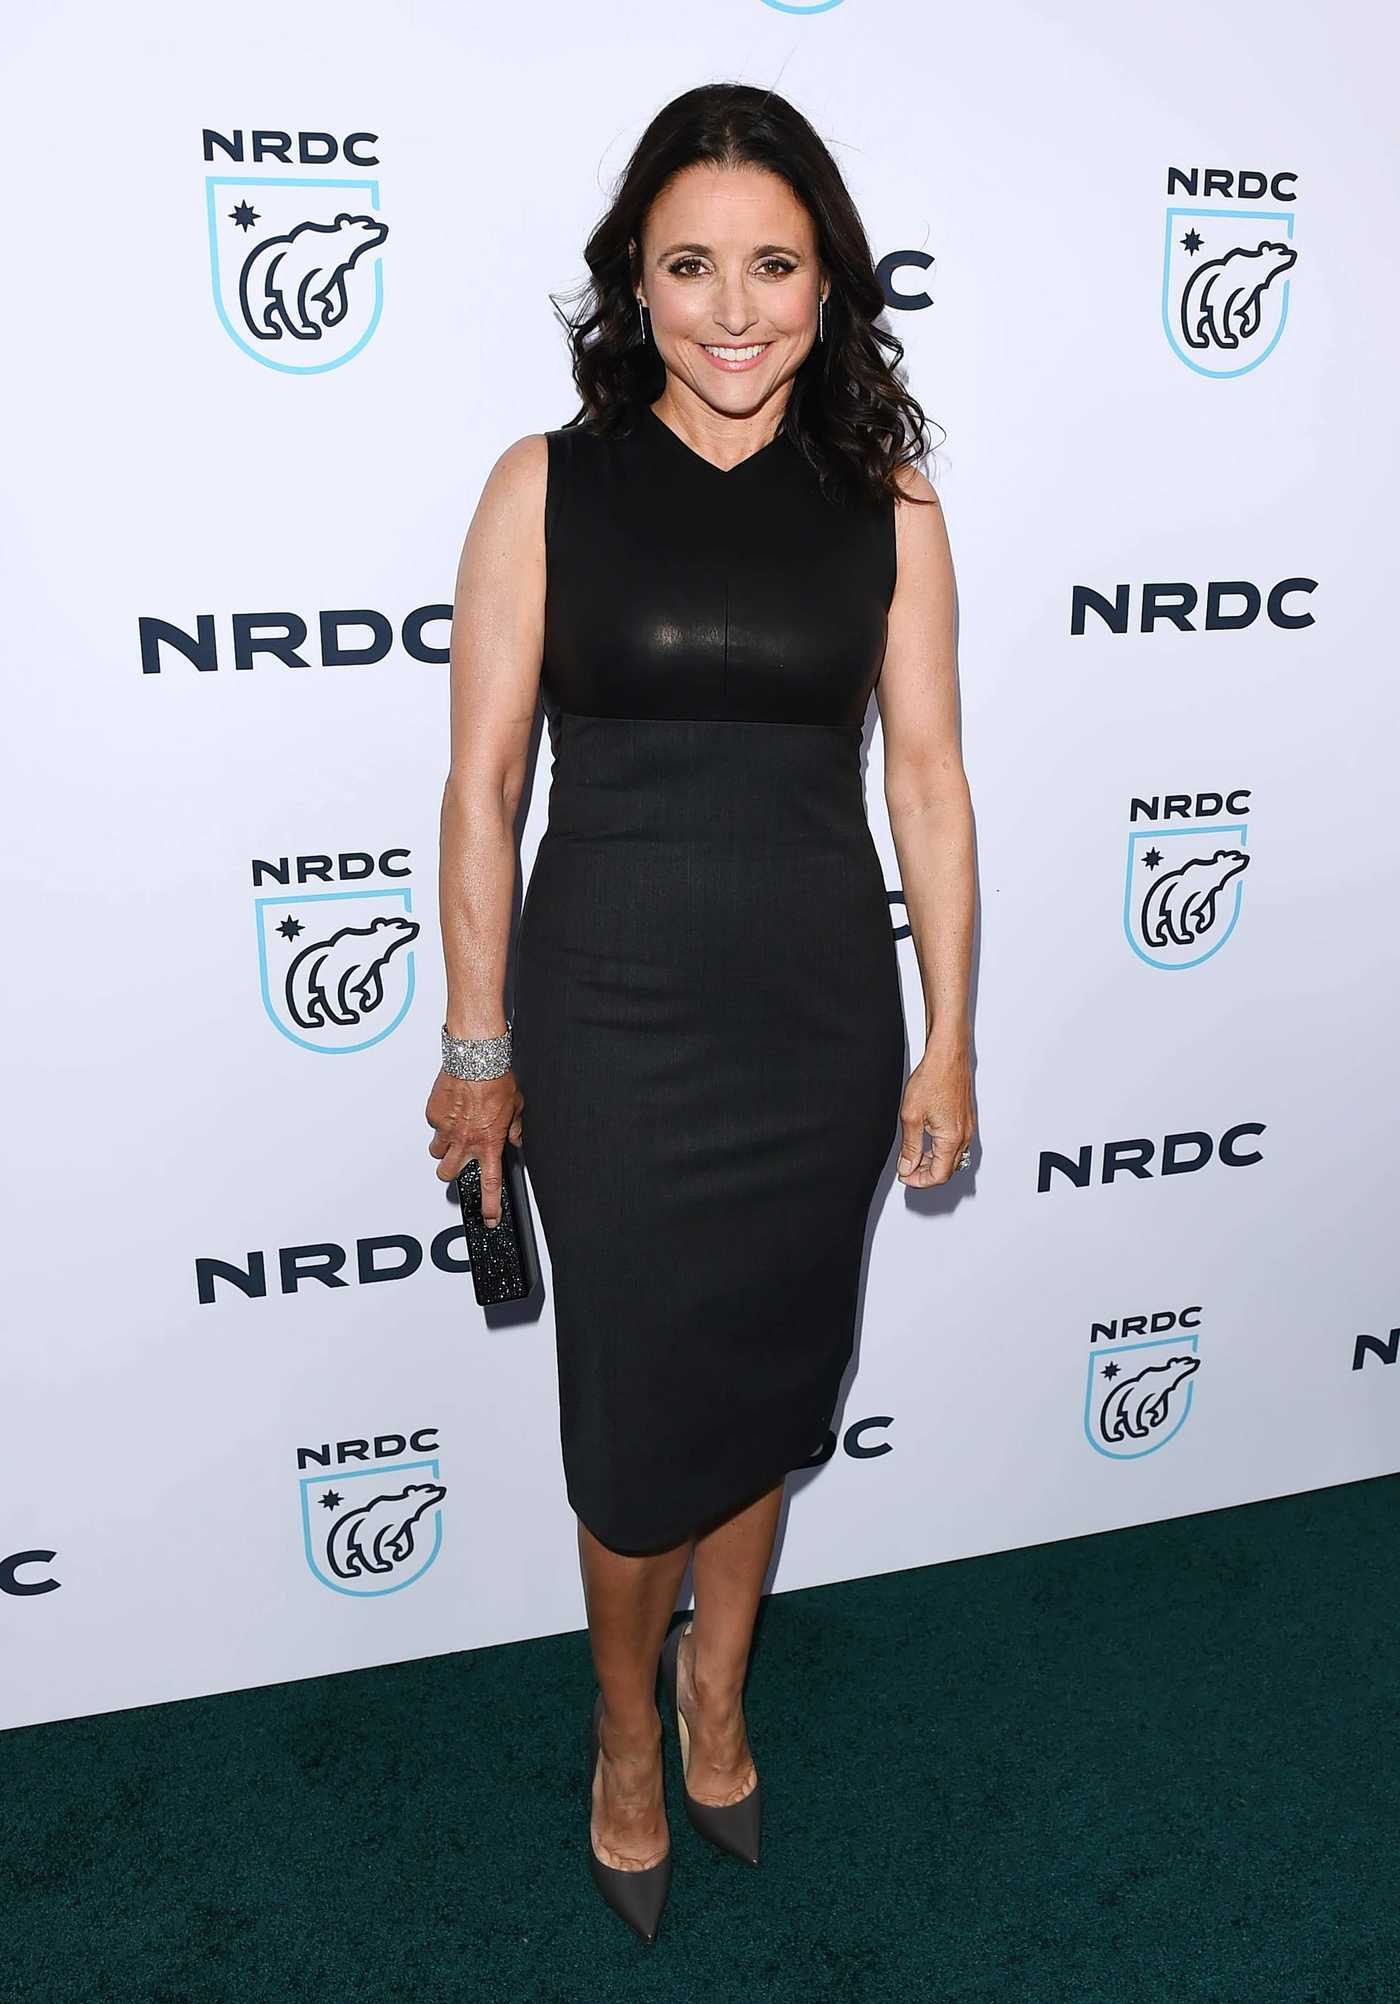 Julia Louis-Dreyfus at NRDC STAND UP! for the Planet Event in Los Angeles 04/25/2017